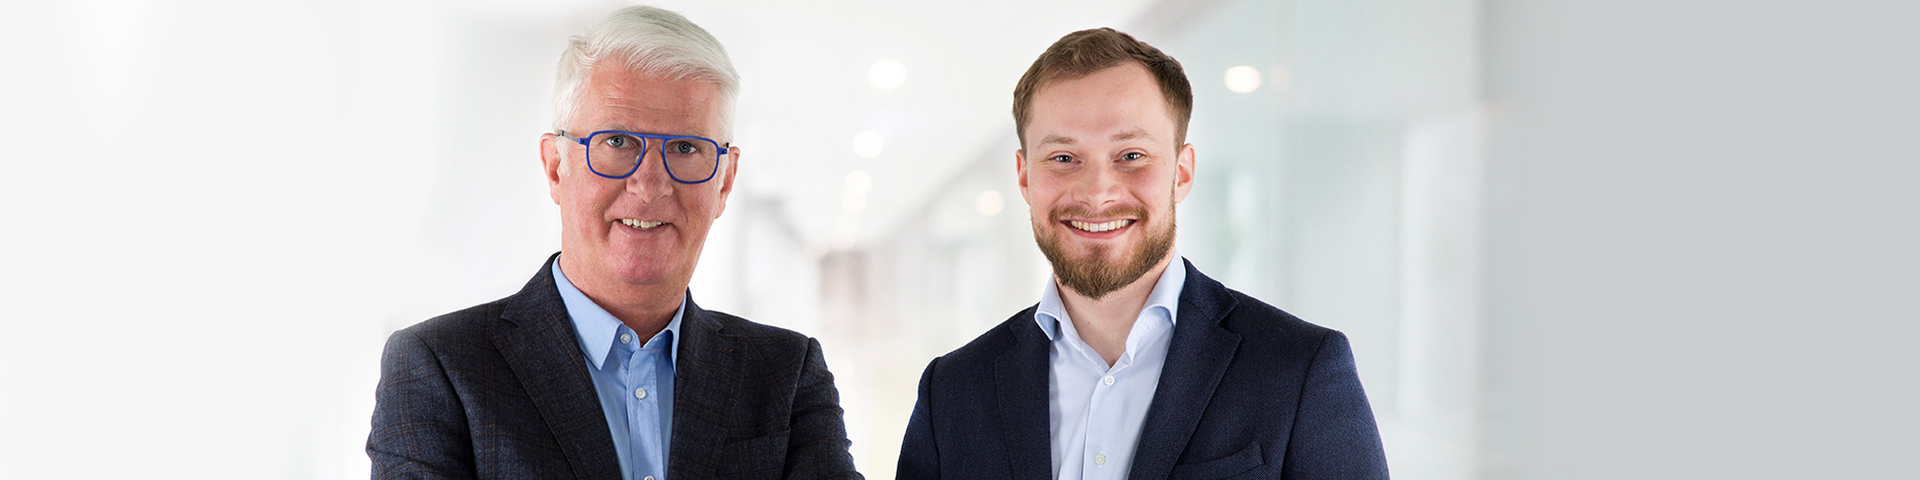 Twee nieuwe Professional Relations Managers Bausch + Lomb